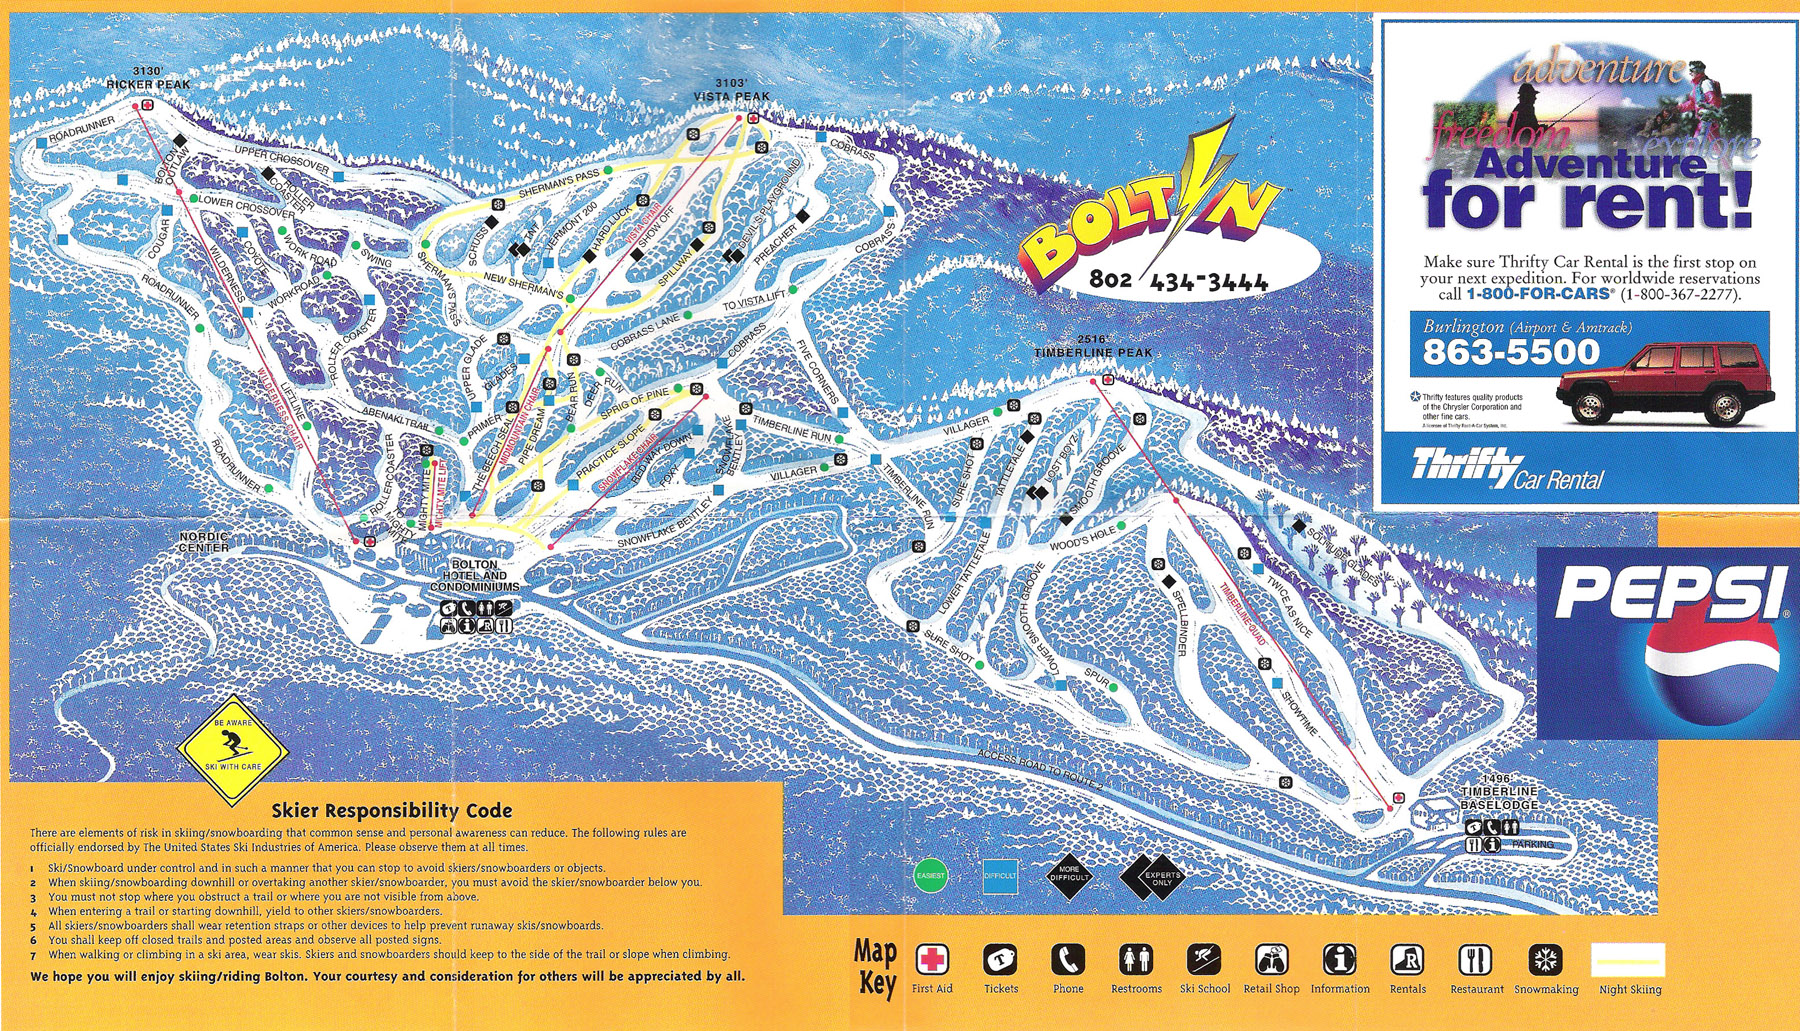 Bolton Valley Resort - SkiMap.org on snowshoe wv, babcock state park map, cass scenic railroad map, snowshoe lodging, snowshoe village, snoqualmie valley trail map, holly river state park map, snowshoe restaurants, snowshoe western territory, snowshoe mountain,